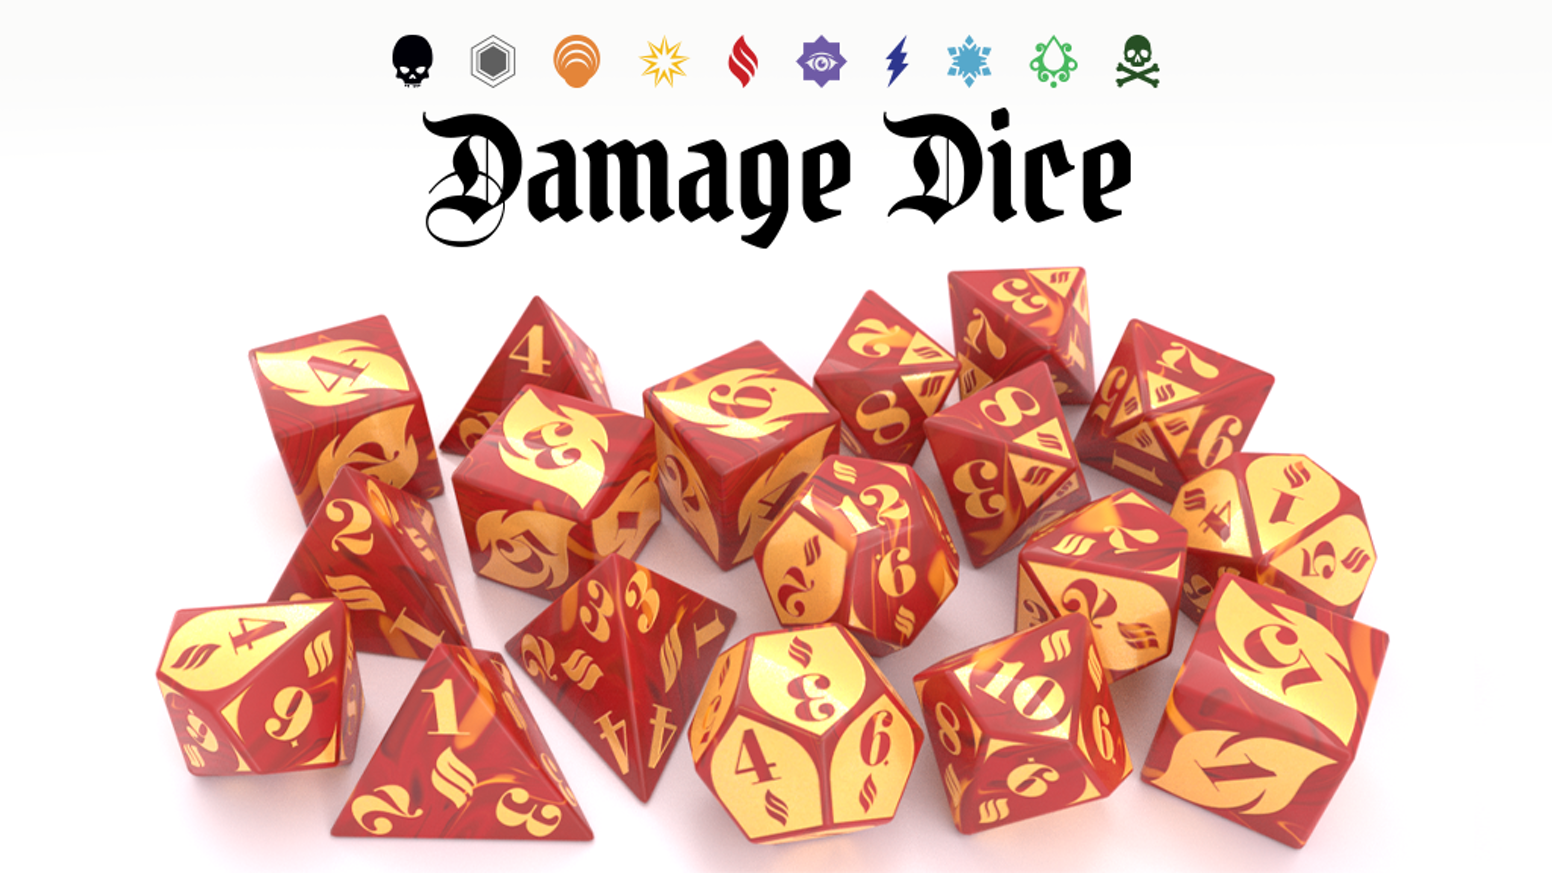 10 different sets of special dice designed to add style, theme and function to every damage roll in Dungeons and Dragons 5th Edition.